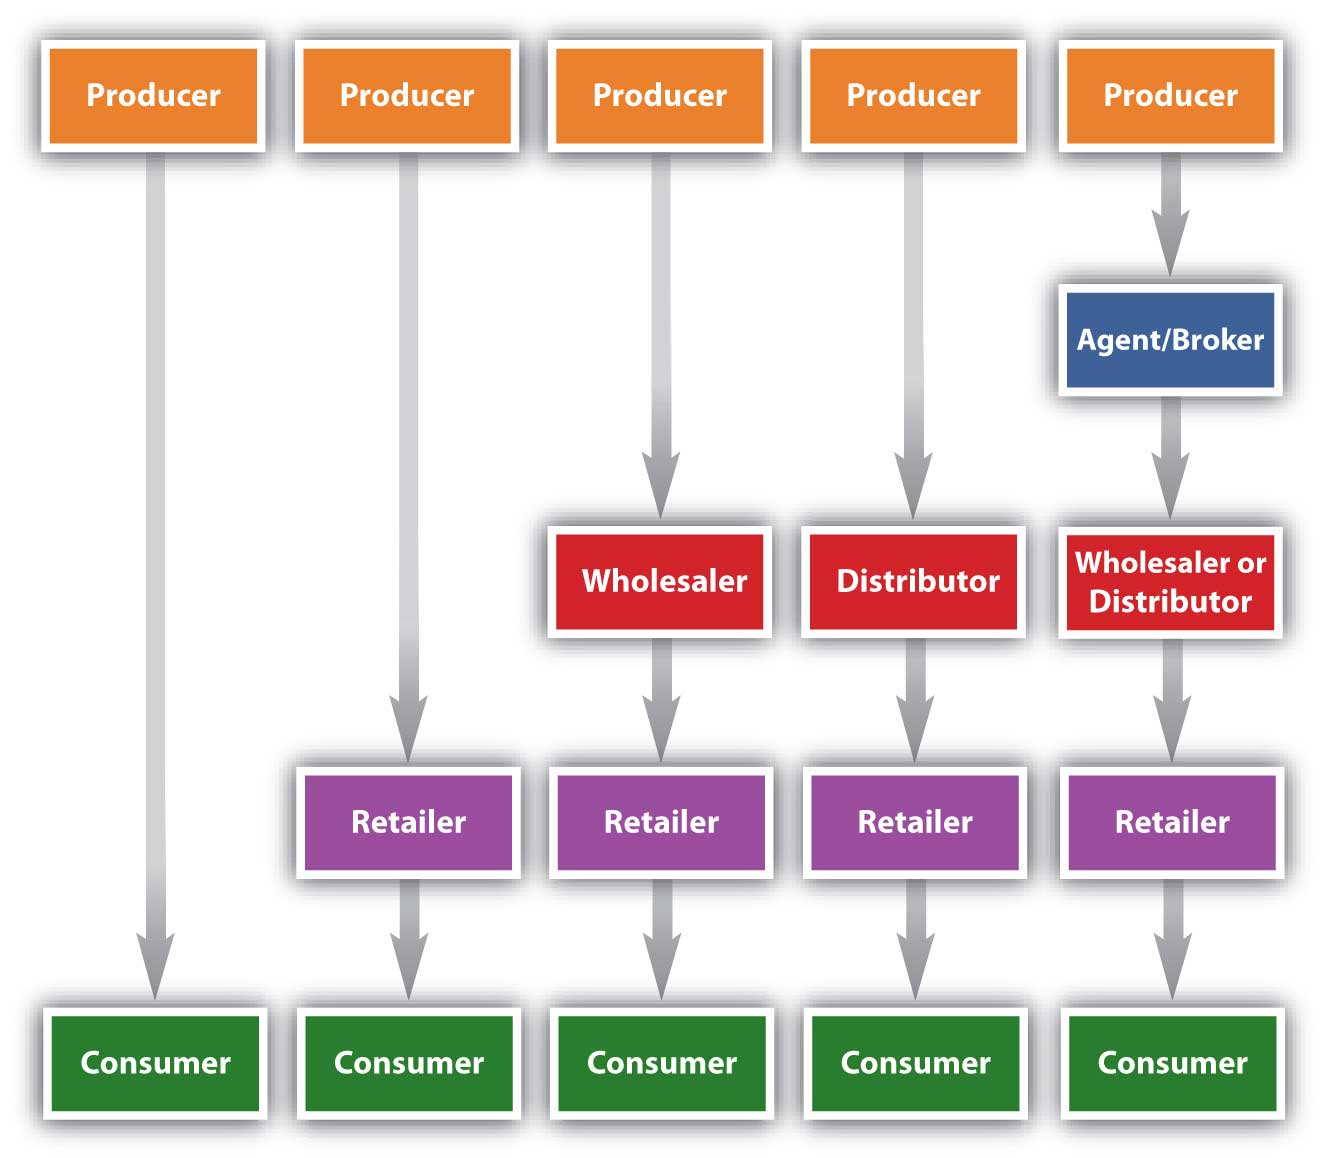 Sales and Distribution Section of the Marketing Plan